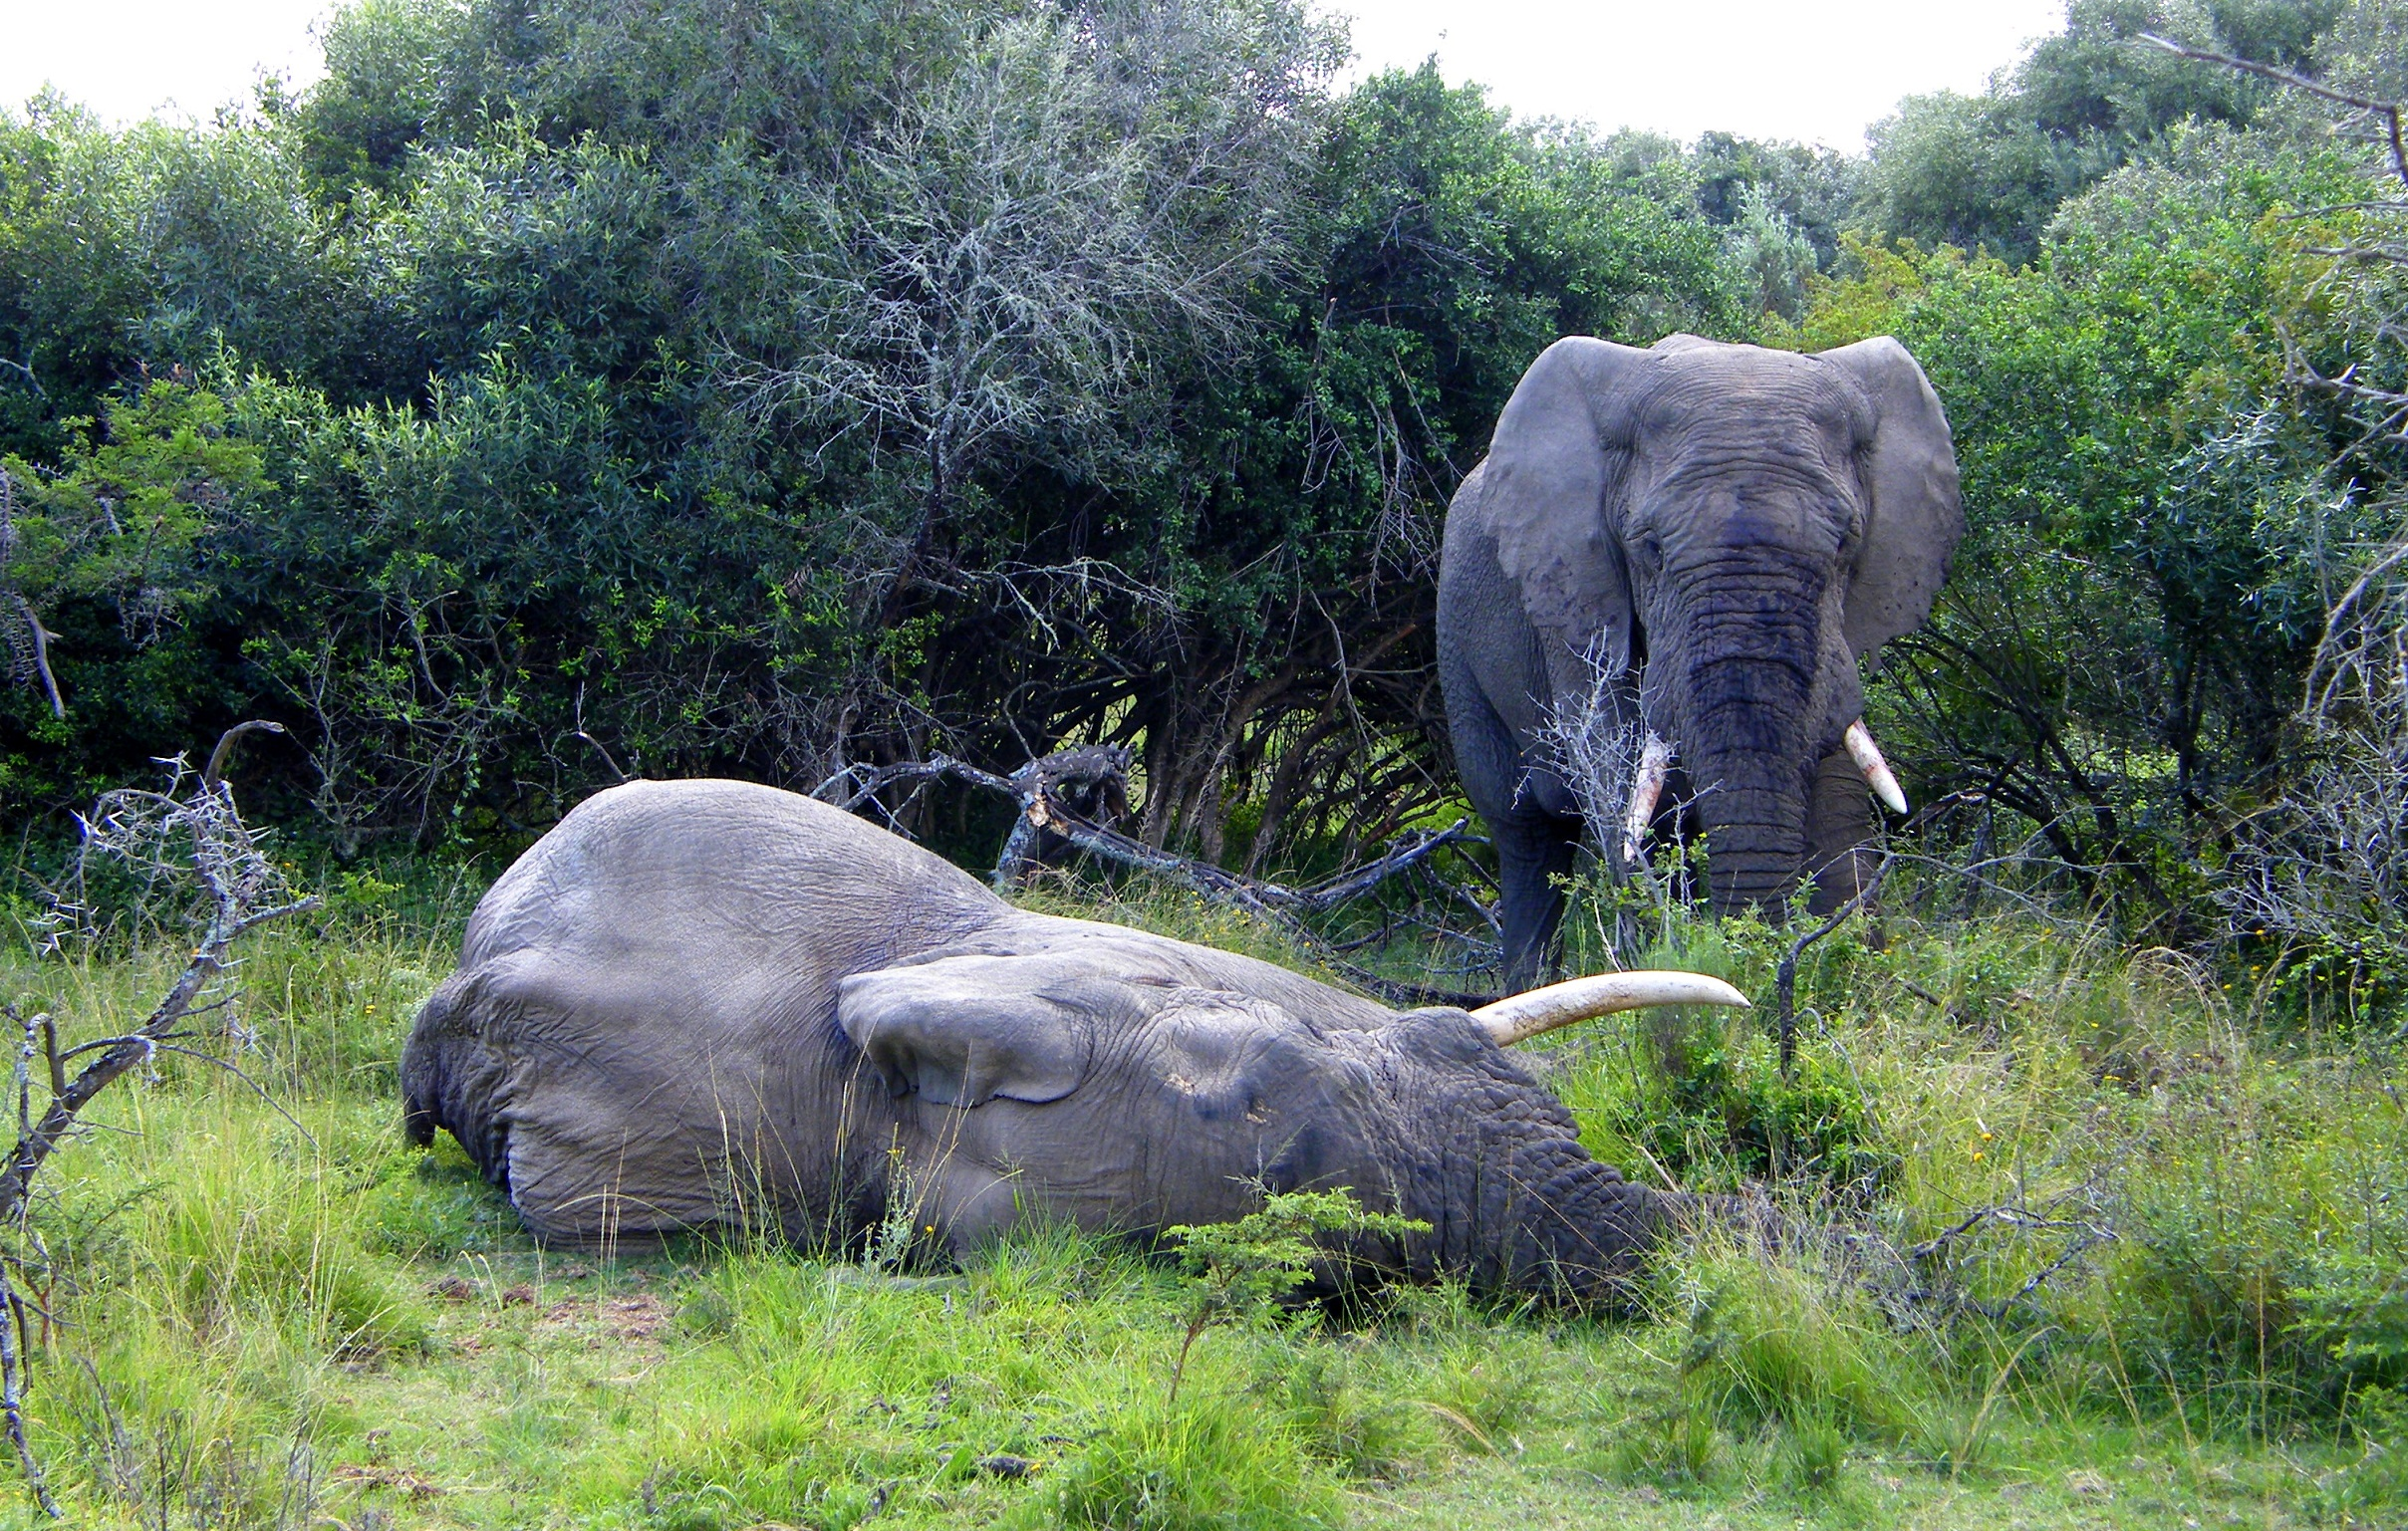 Harpoor the elephant being watched over by another elephant